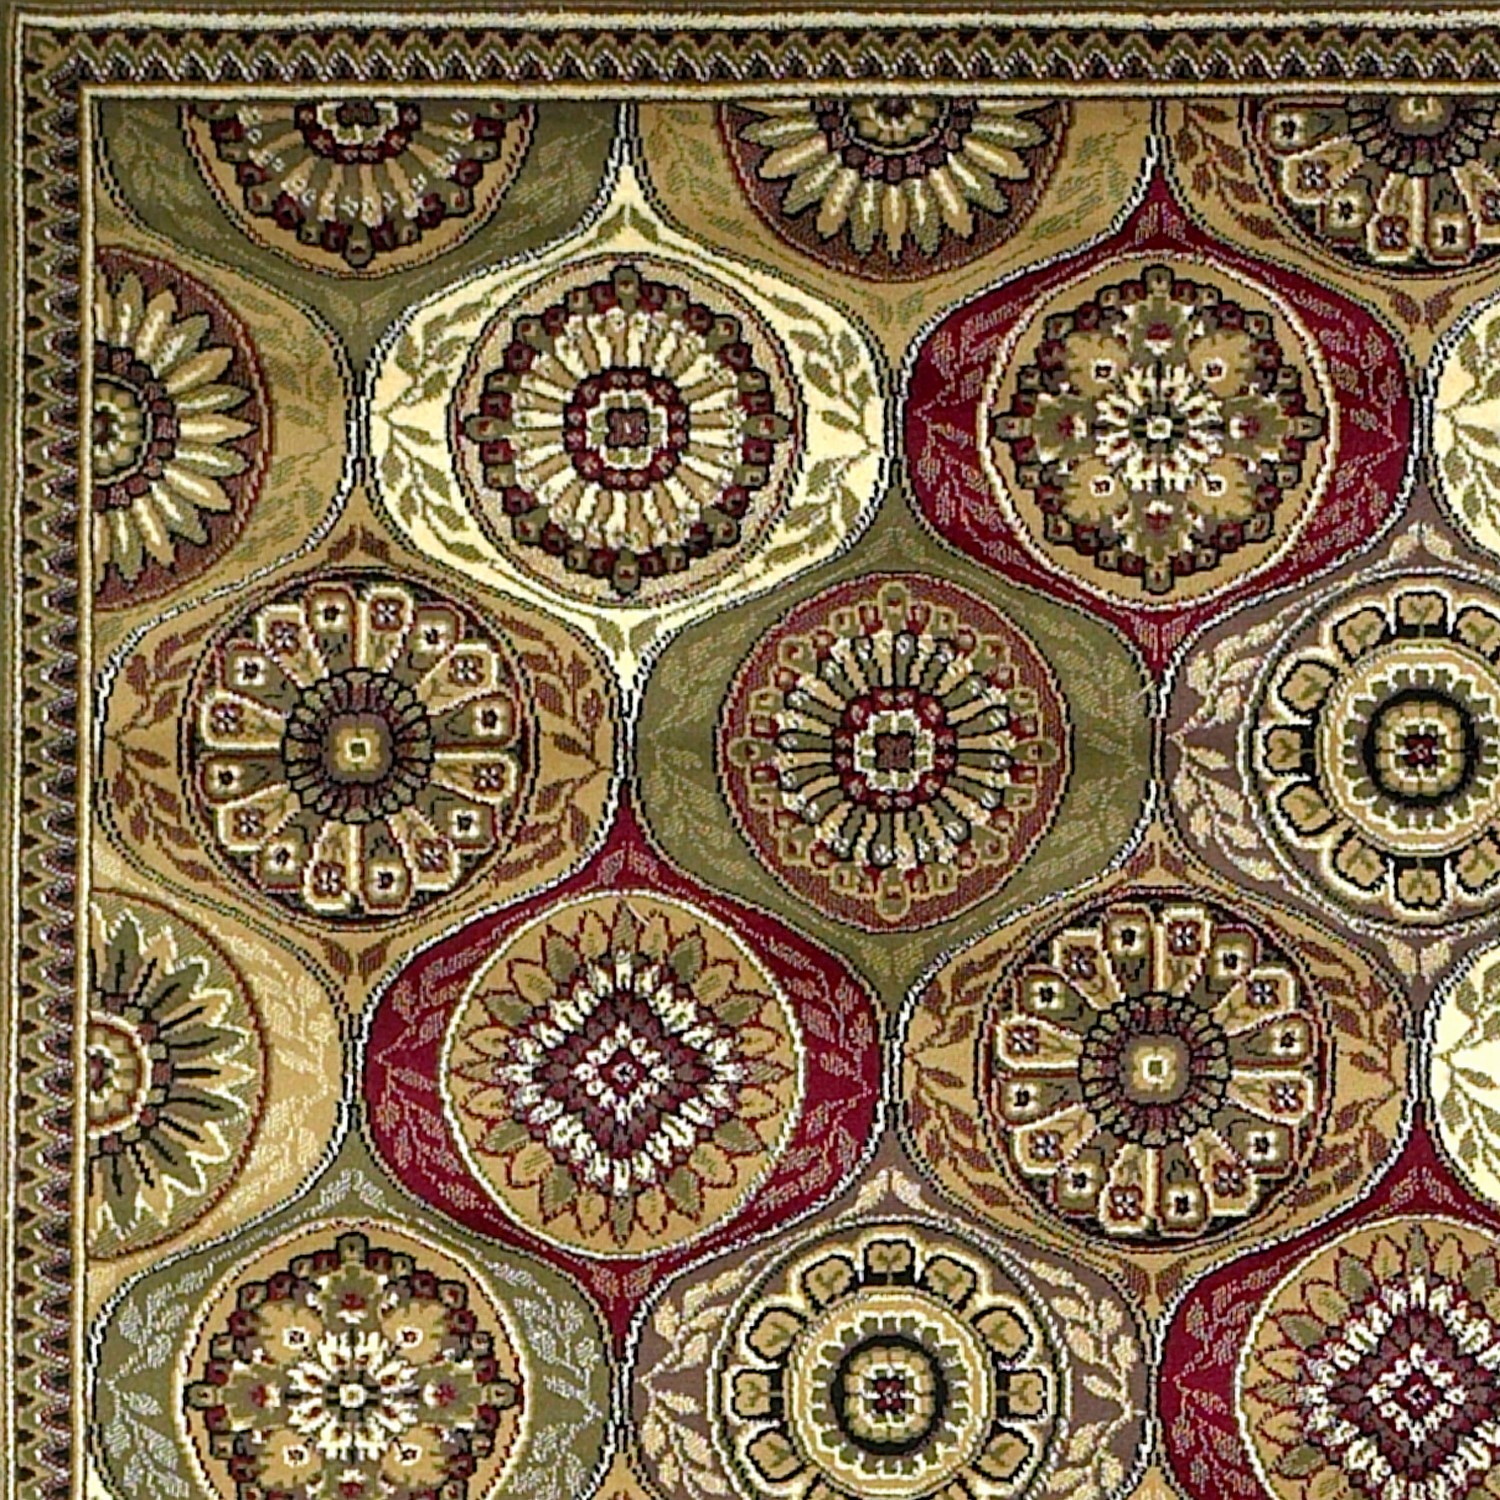 Cambridge 7345 Multi Mosaic Panel